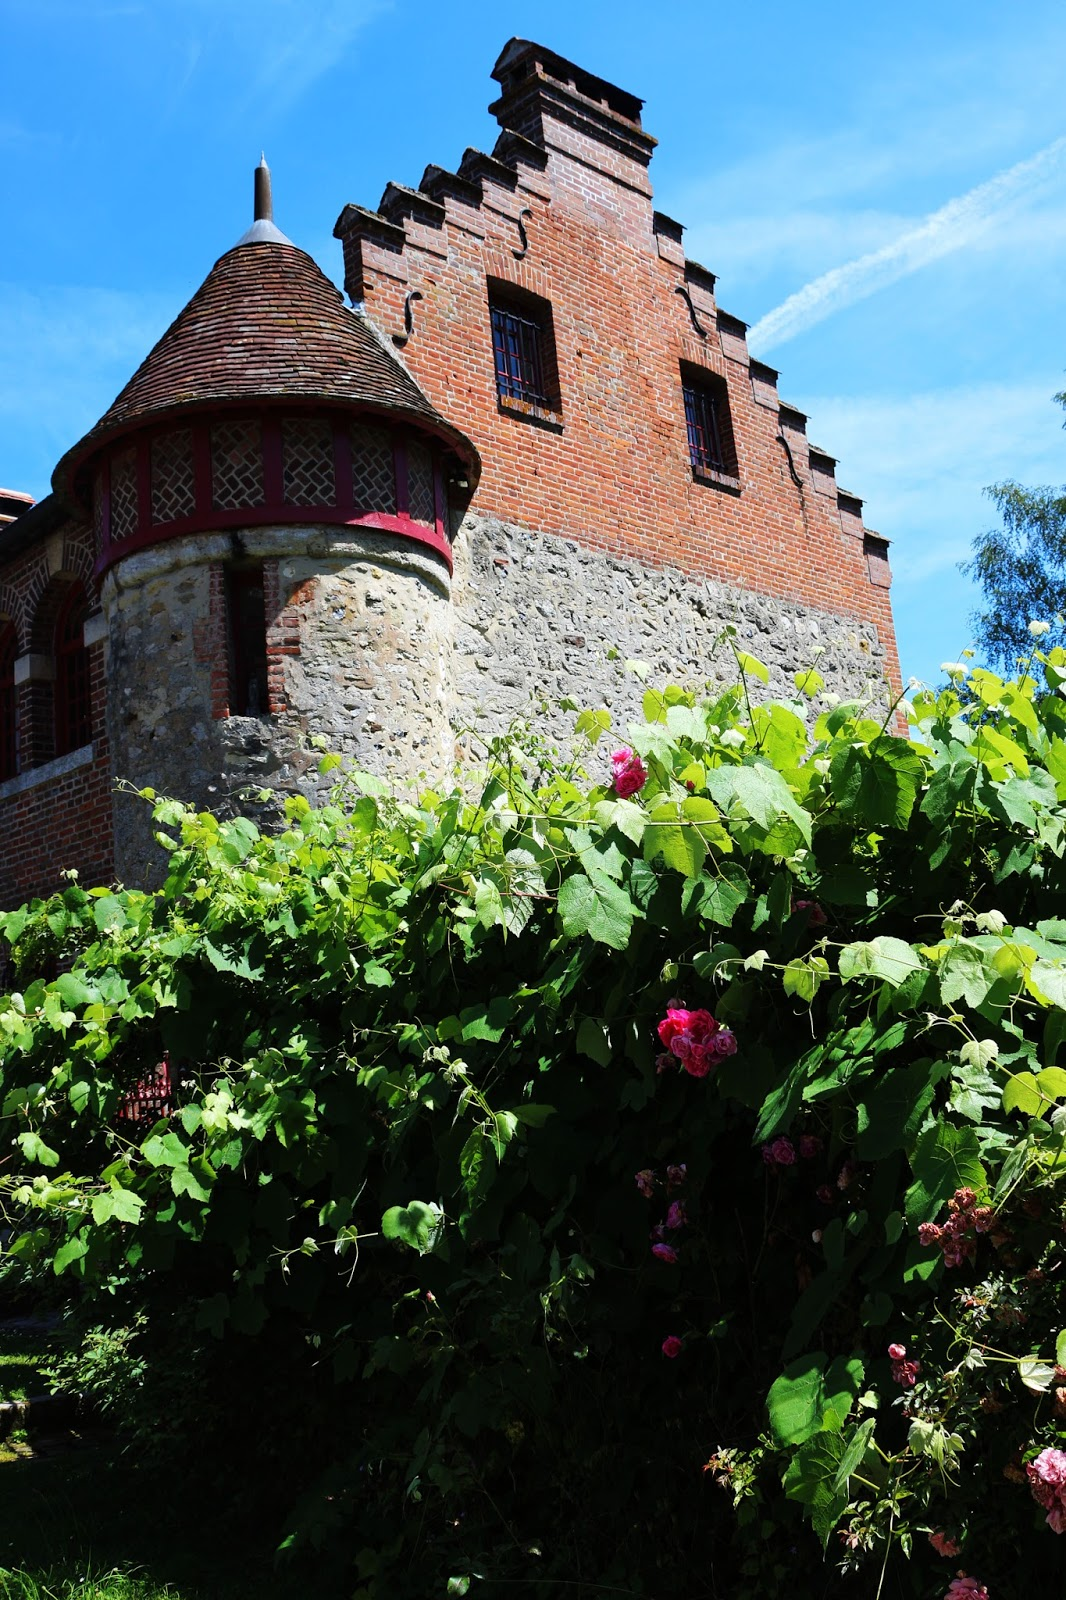 Photography, Landscape, Countryside, Flowers, Architecture, Style, France